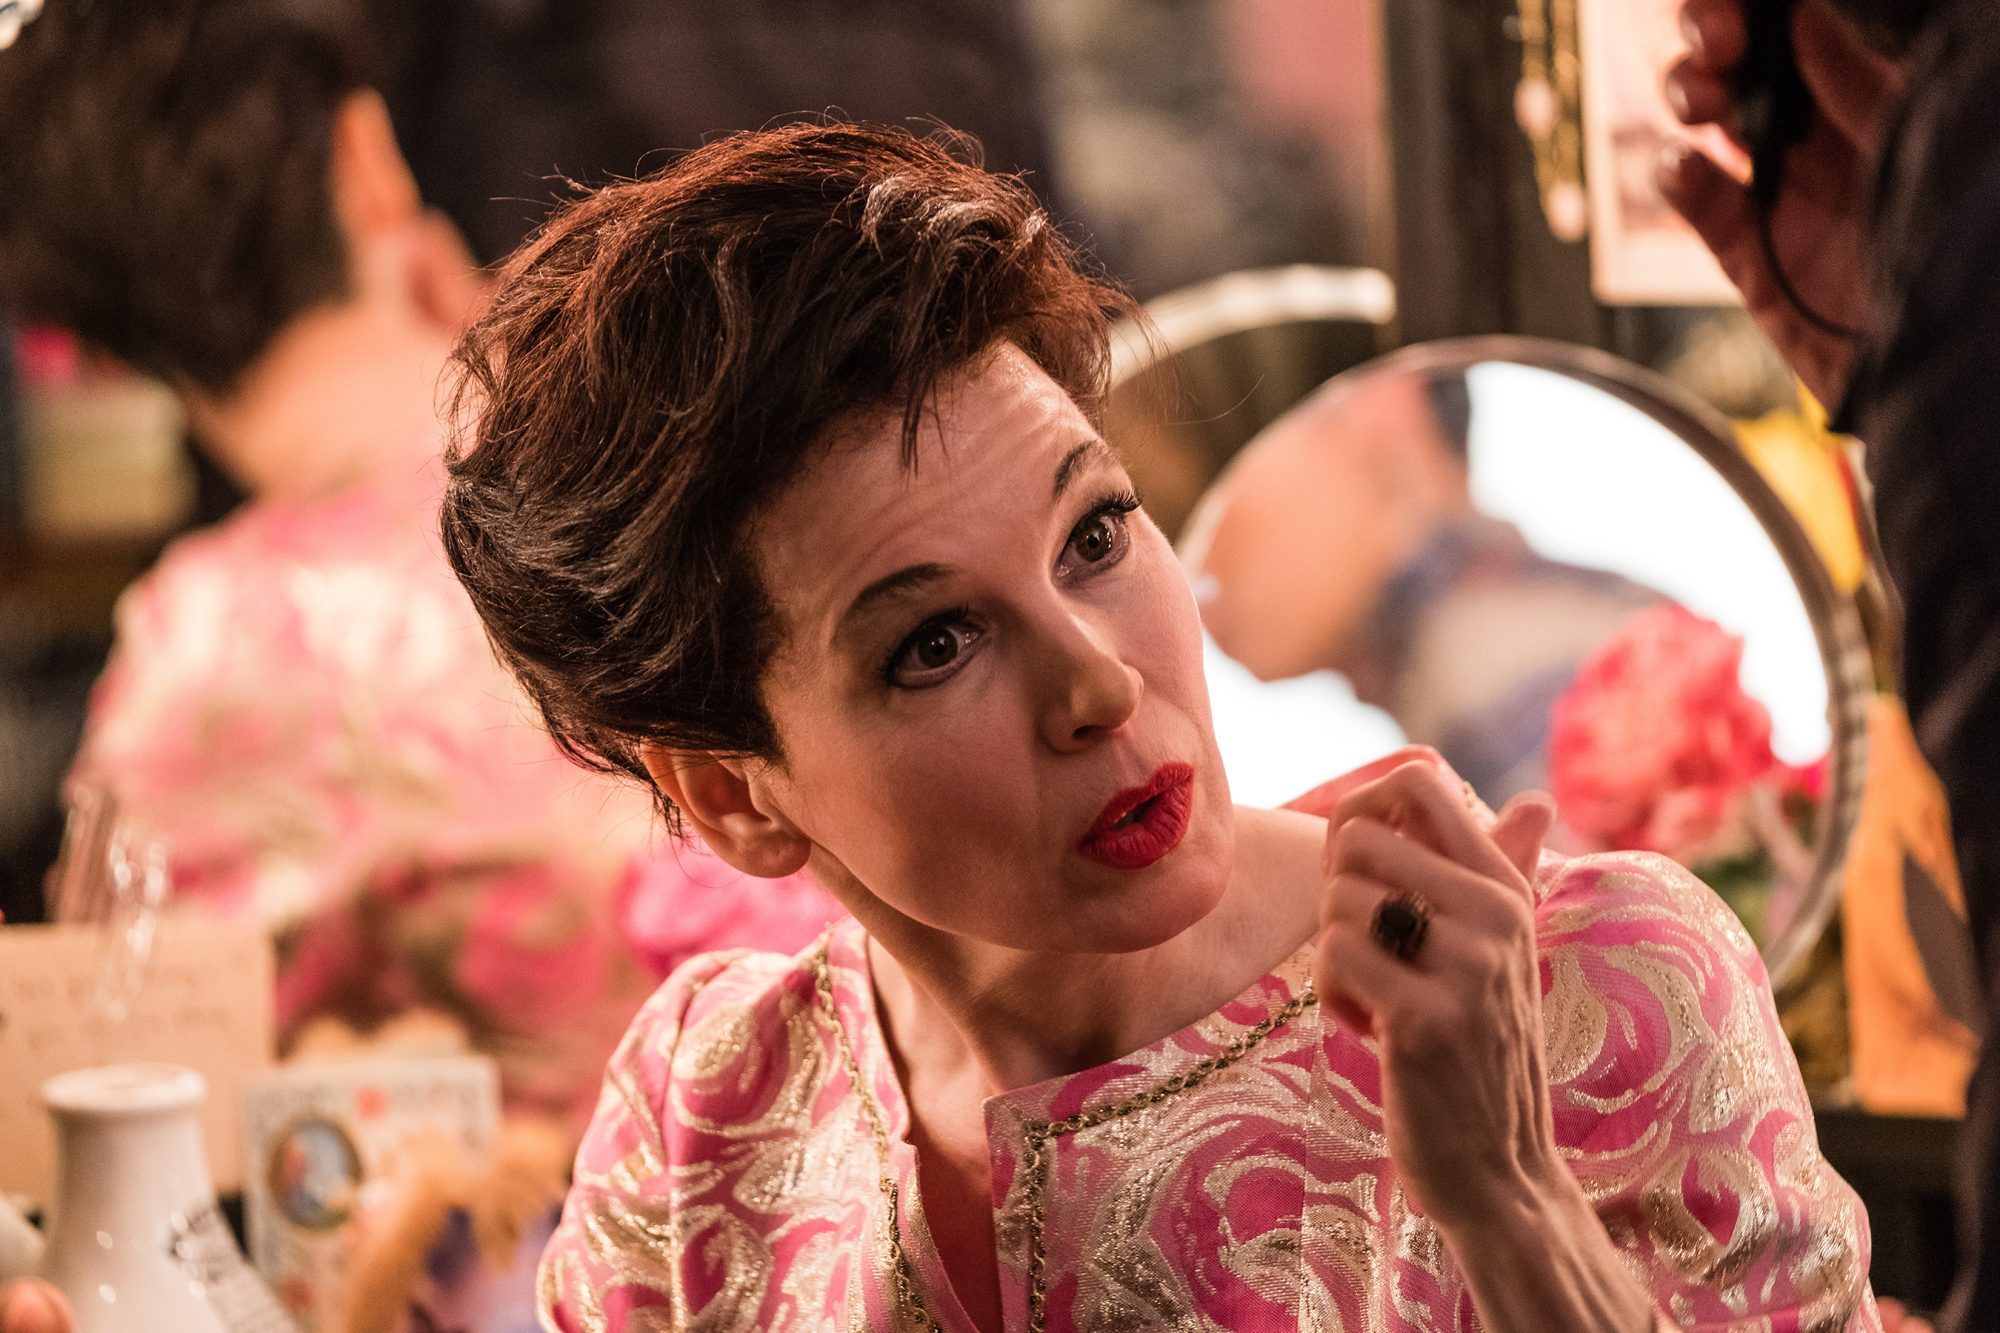 Renee Zellweger as Judy Garland in Judy (2019)